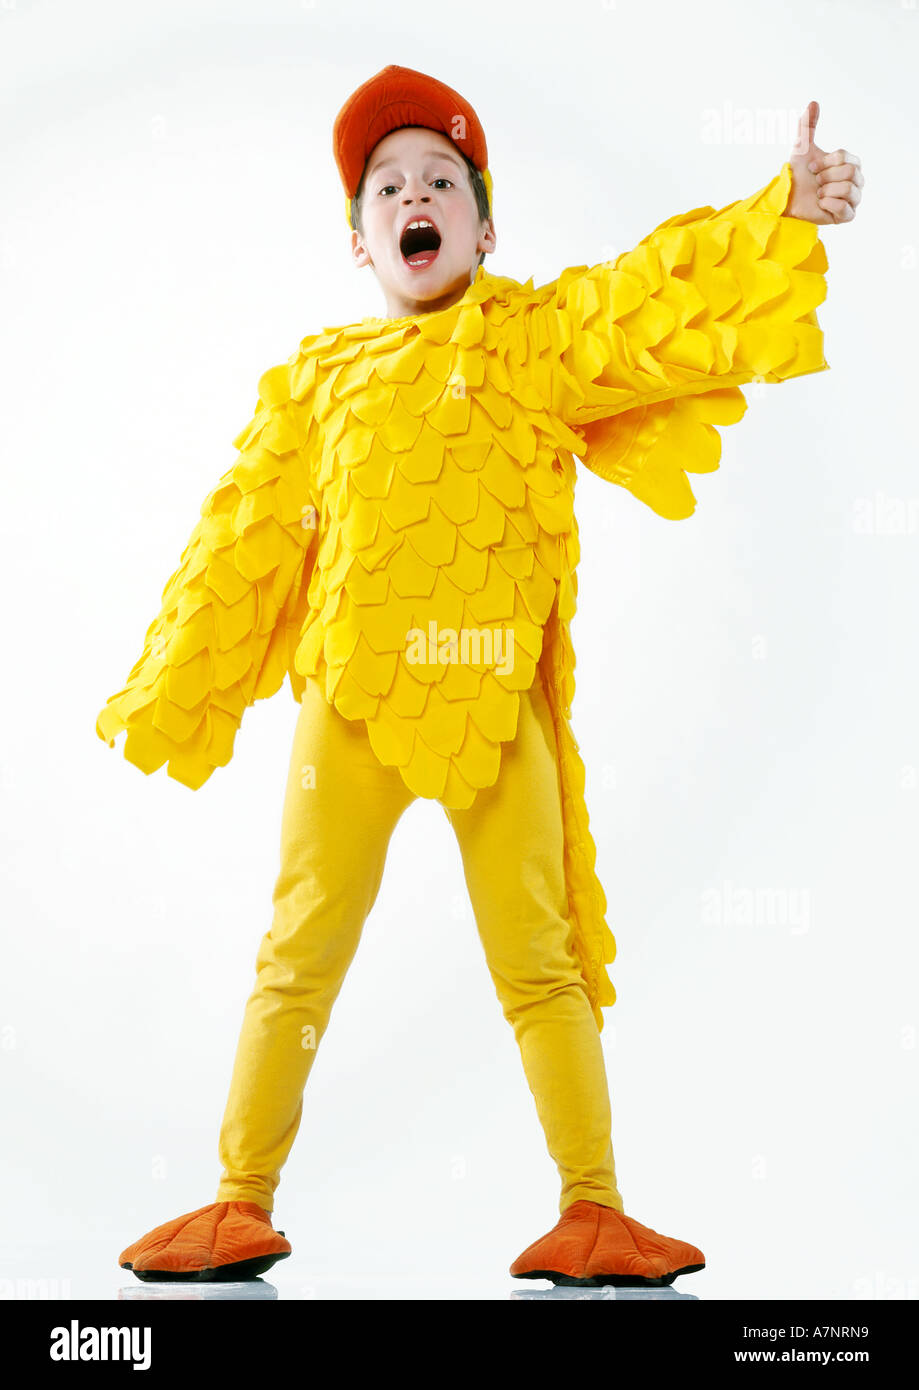 91e33b91bf628 Indoor Studio Child Boy 5 10 Outfit Disguise Costume Duck Duckling Chicken  Hen Feather Feathers Yellow Sc 1 St Alamy